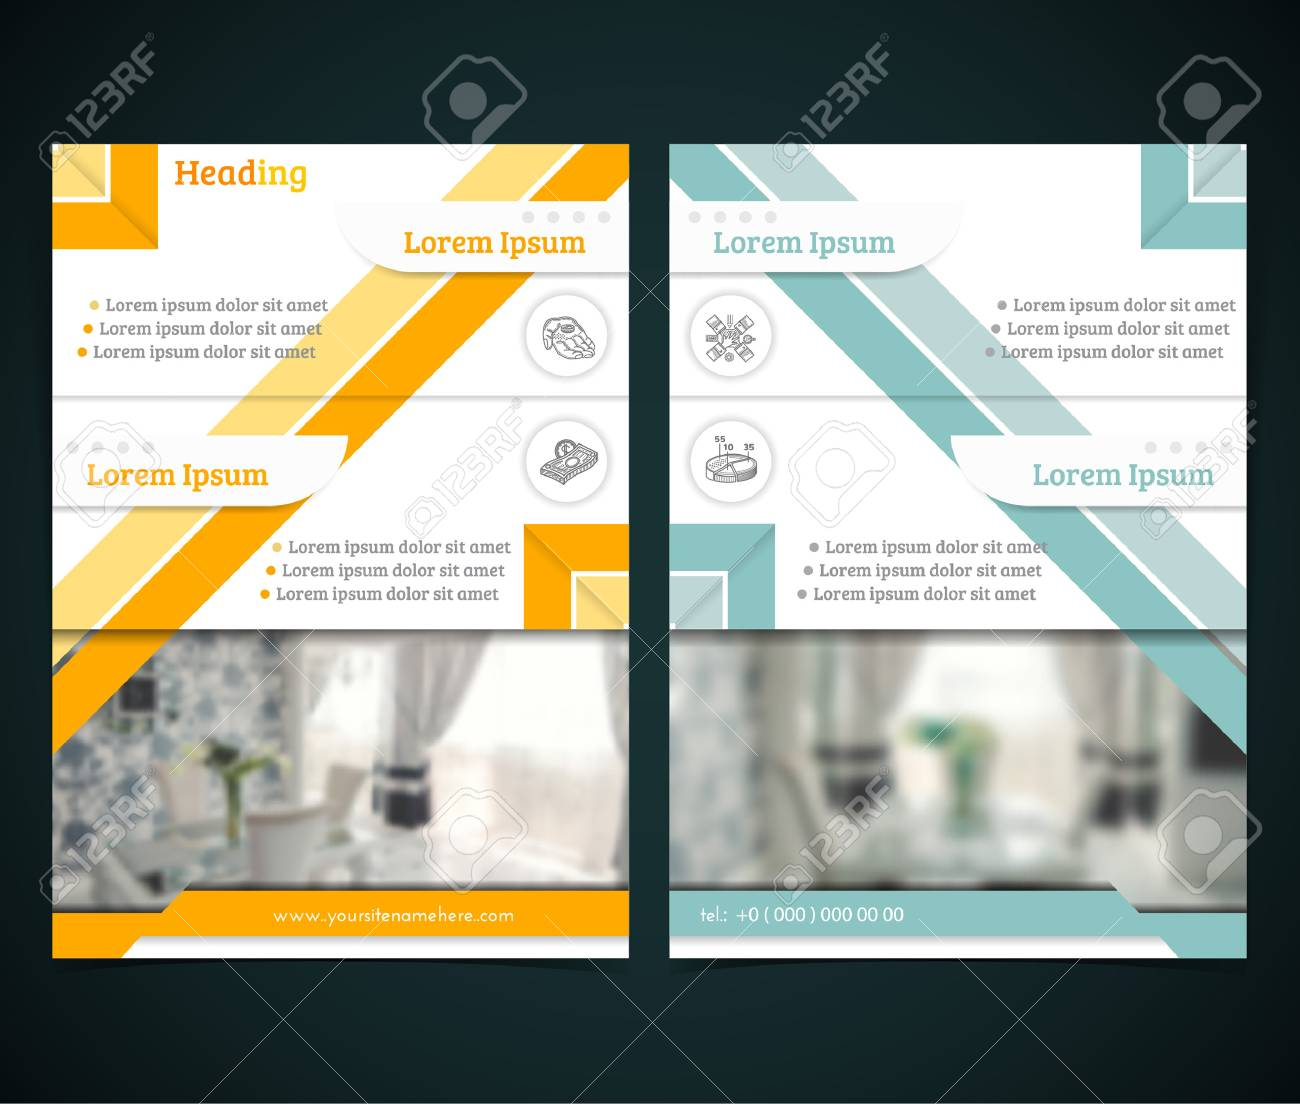 two sided brochure or flyer template design with interior blurred